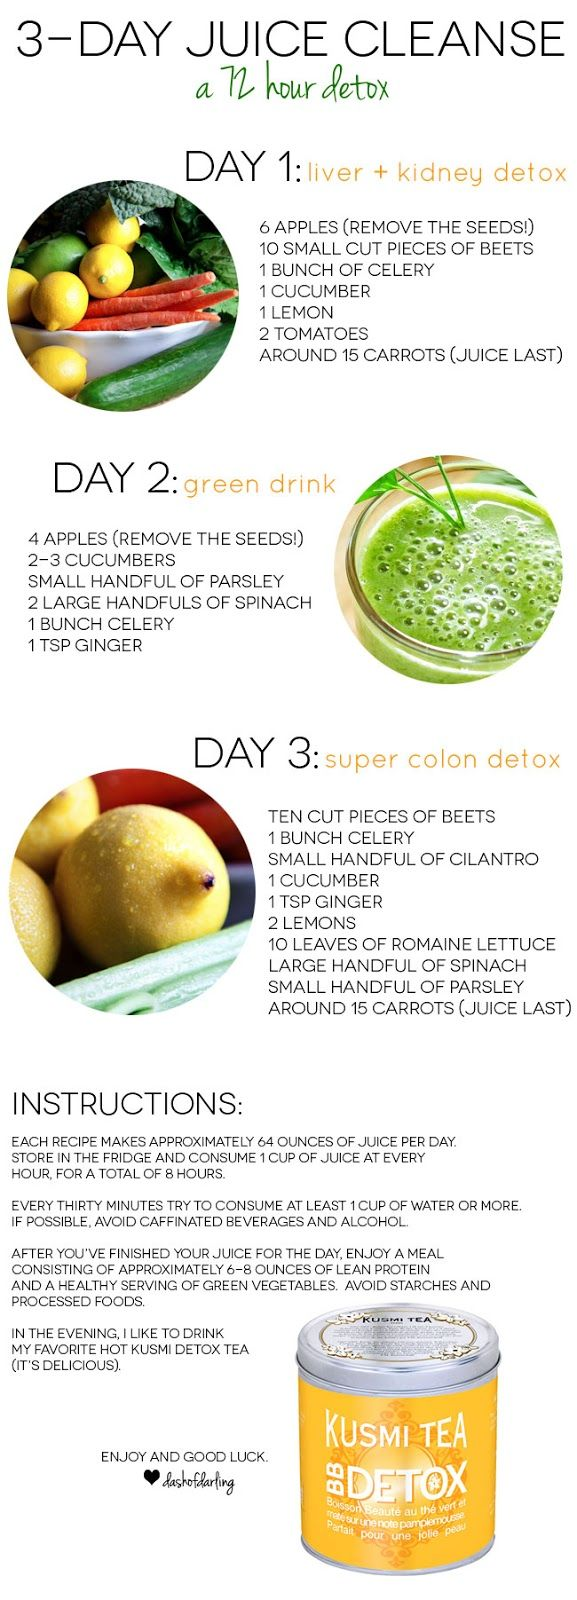 Three Day Juice Cleanse - Short, effective, and allows a meal at night.  Have to try this. @lilirae89